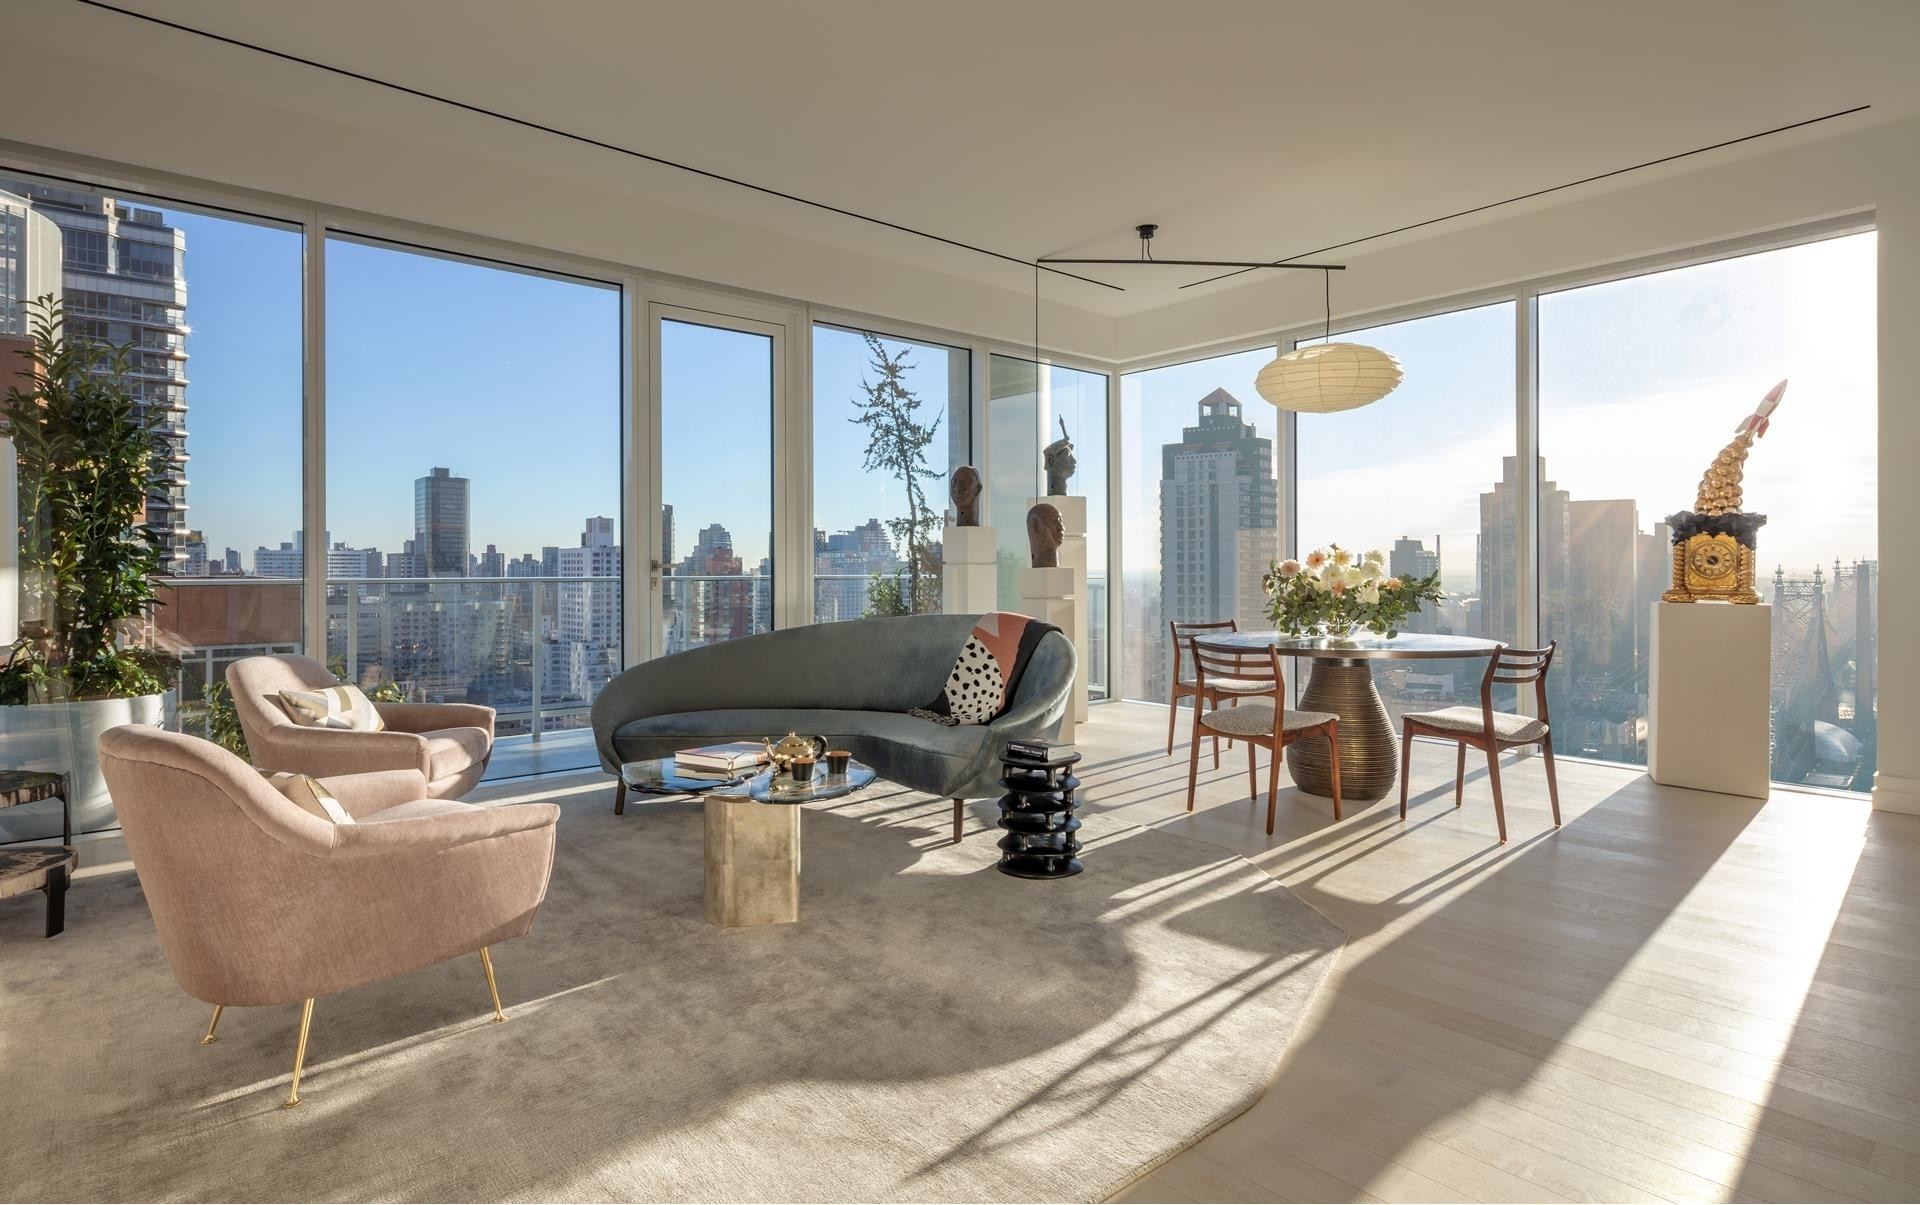 Property at 200 East 59th St, 23D New York